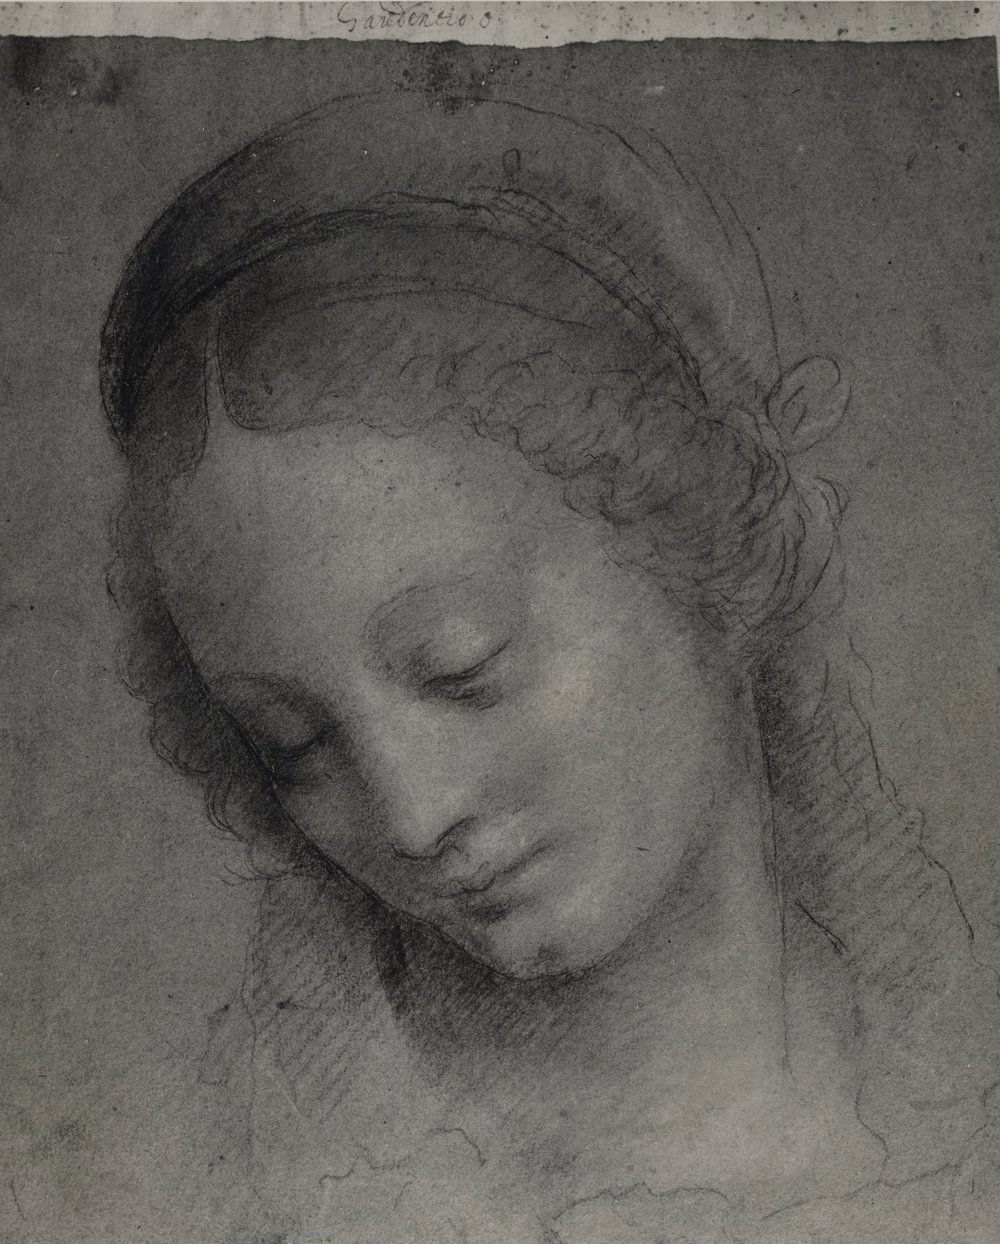 Fig. 1. Bernardino Lanino,  Head of a Virgin , black, white, and yellow chalk on blue paper, 11 2/5 x 9 4/5 inches (29 x 25 cm), private collection, Santa Barbara